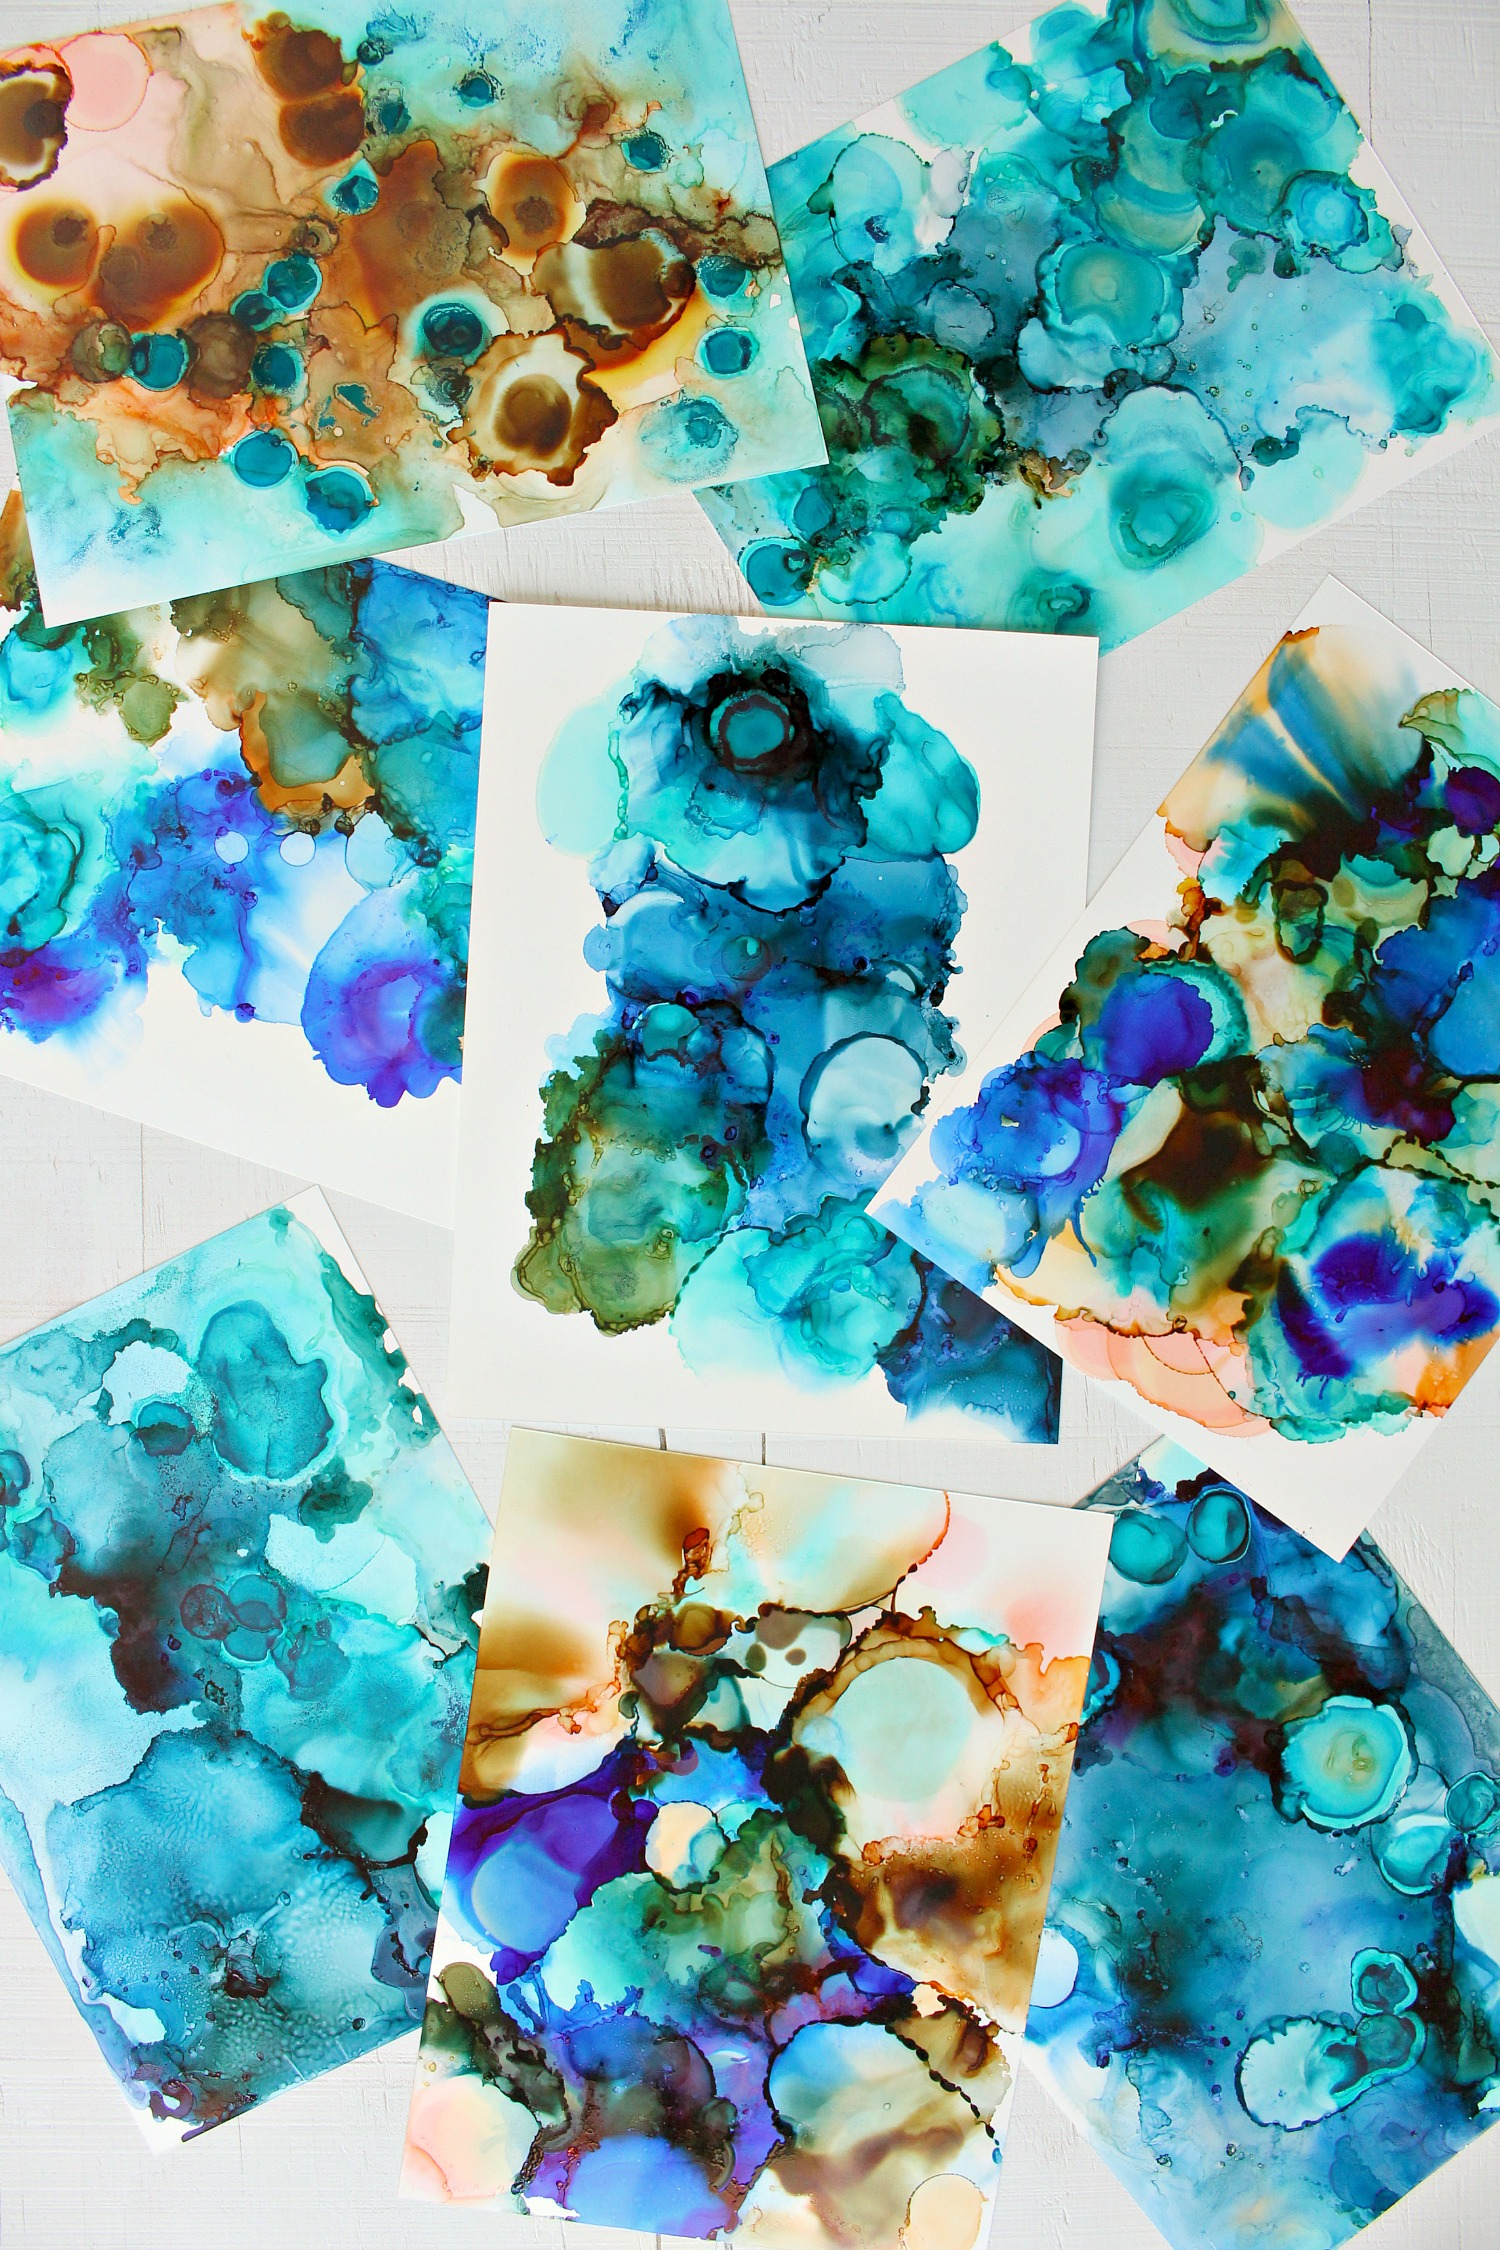 Alcohol Ink Art DIY